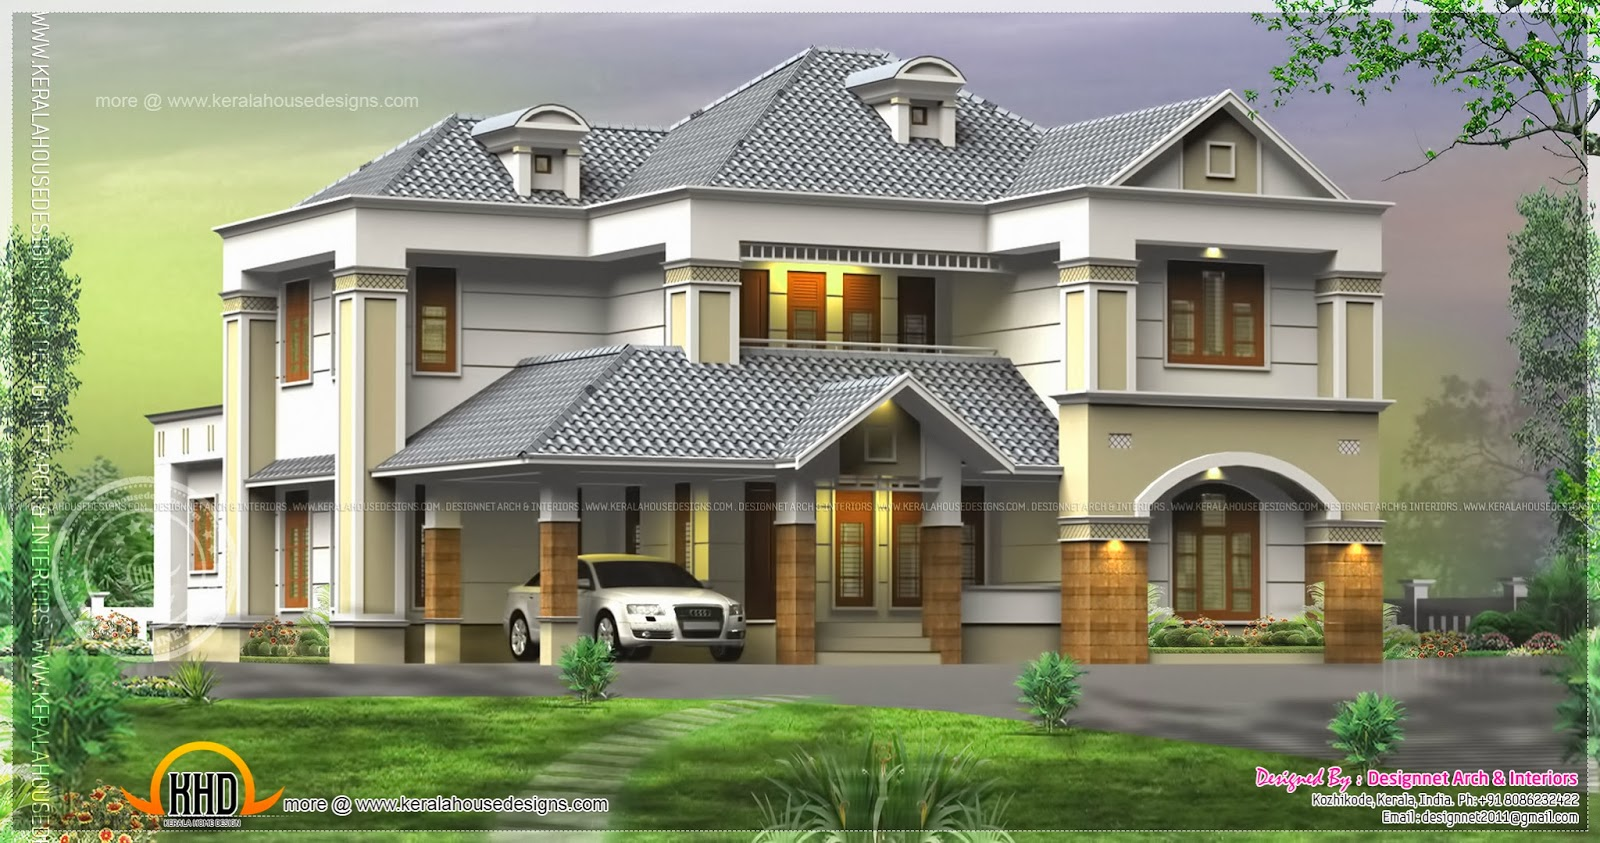 3d Rendering Of 241 Square Meter House Kerala Home